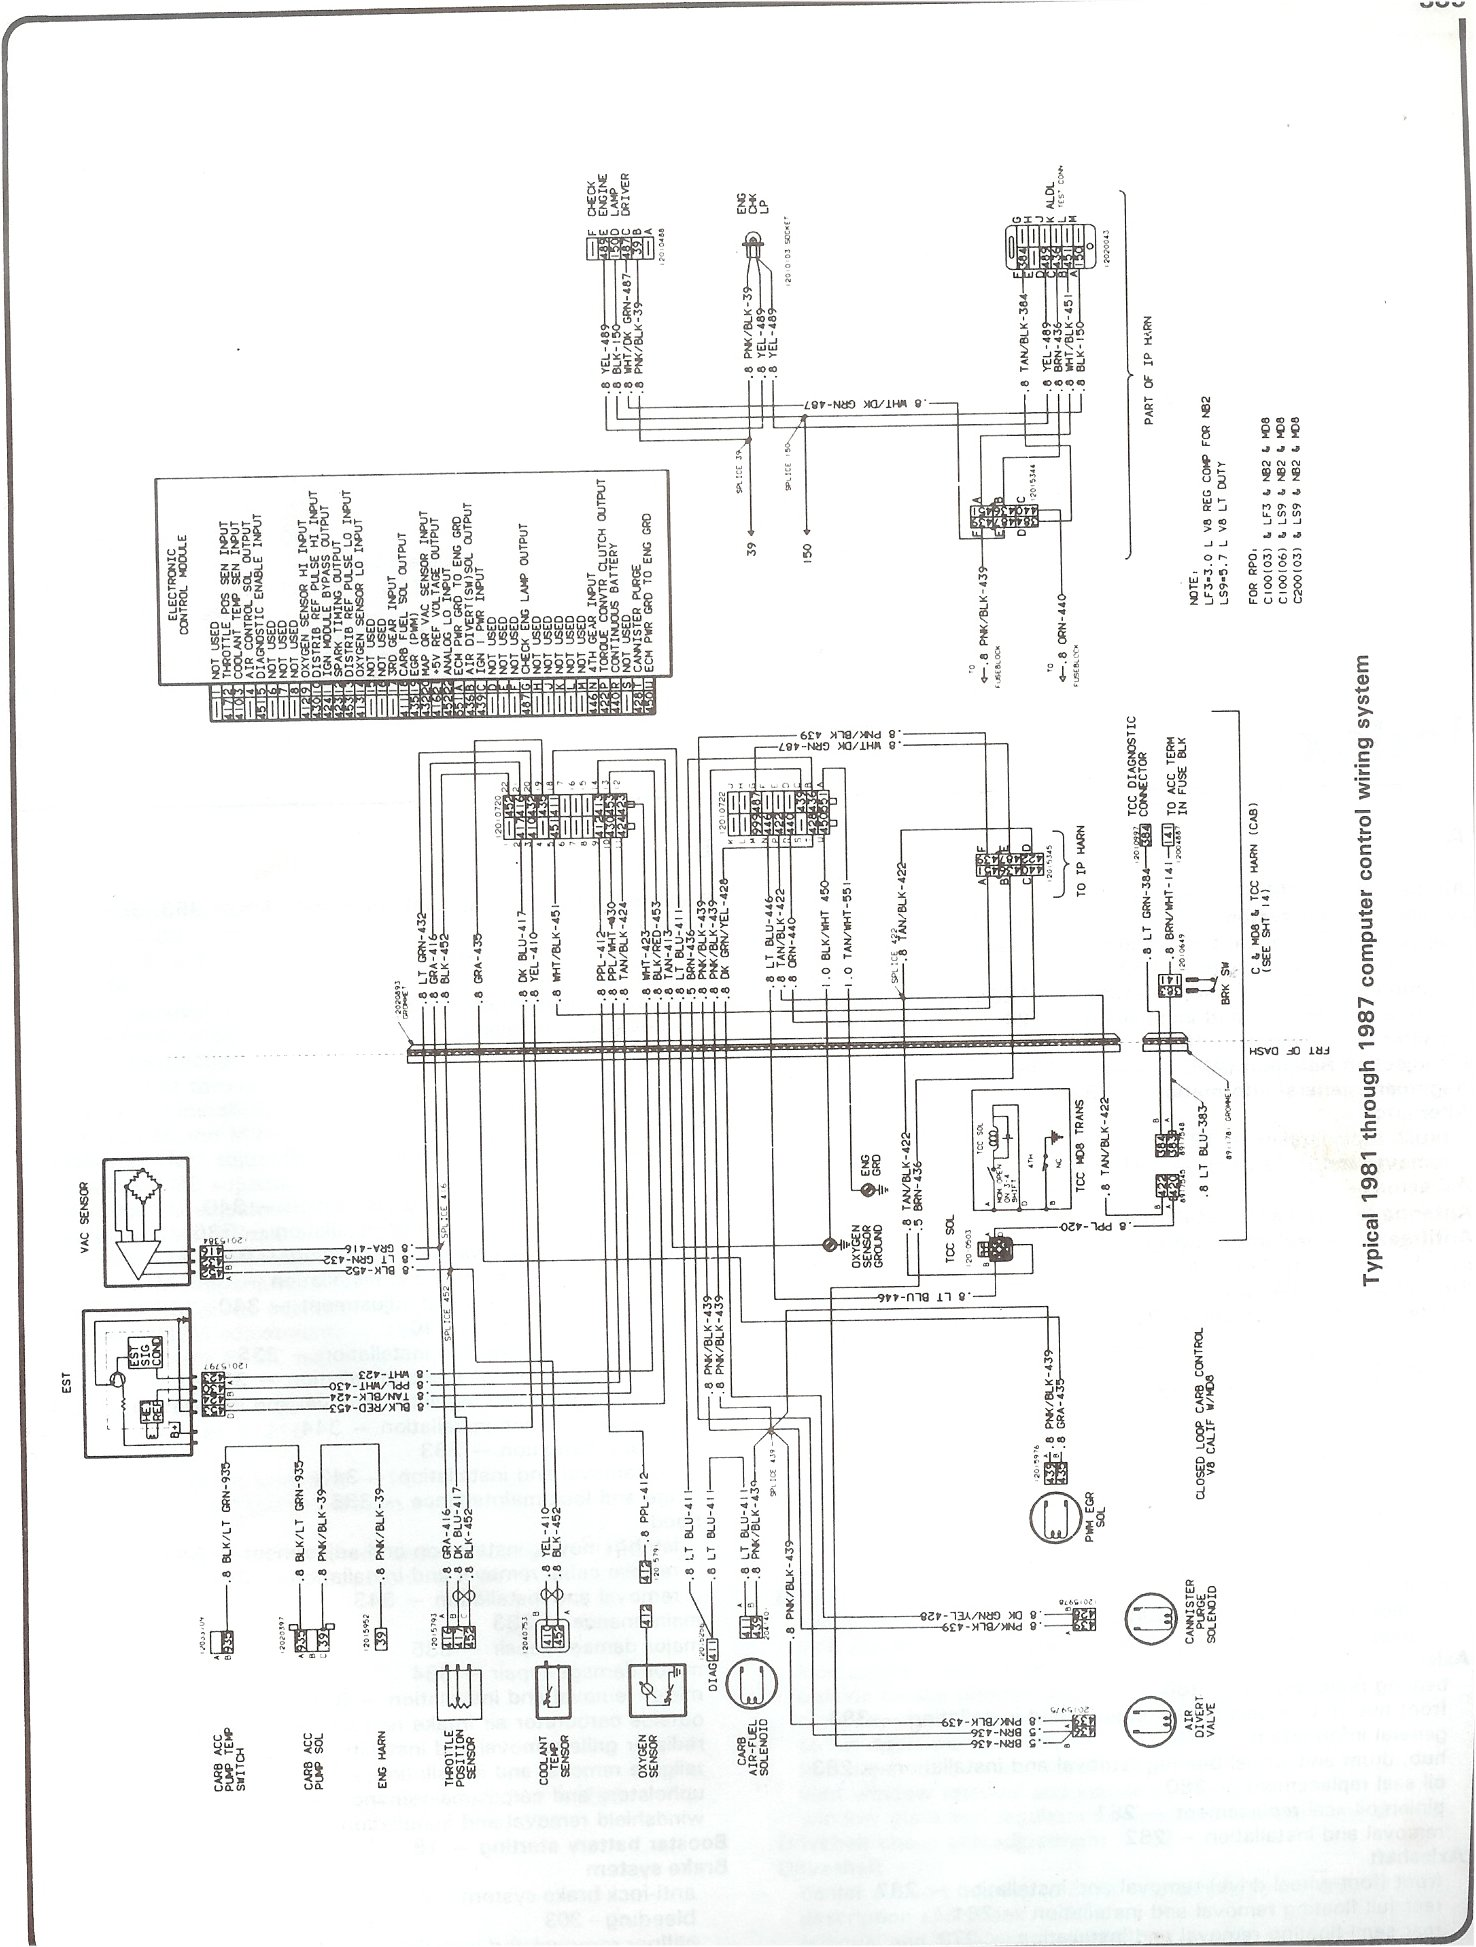 81 87_computer_control_wiring complete 73 87 wiring diagrams 1985 chevy scottsdale wiring diagram at bakdesigns.co